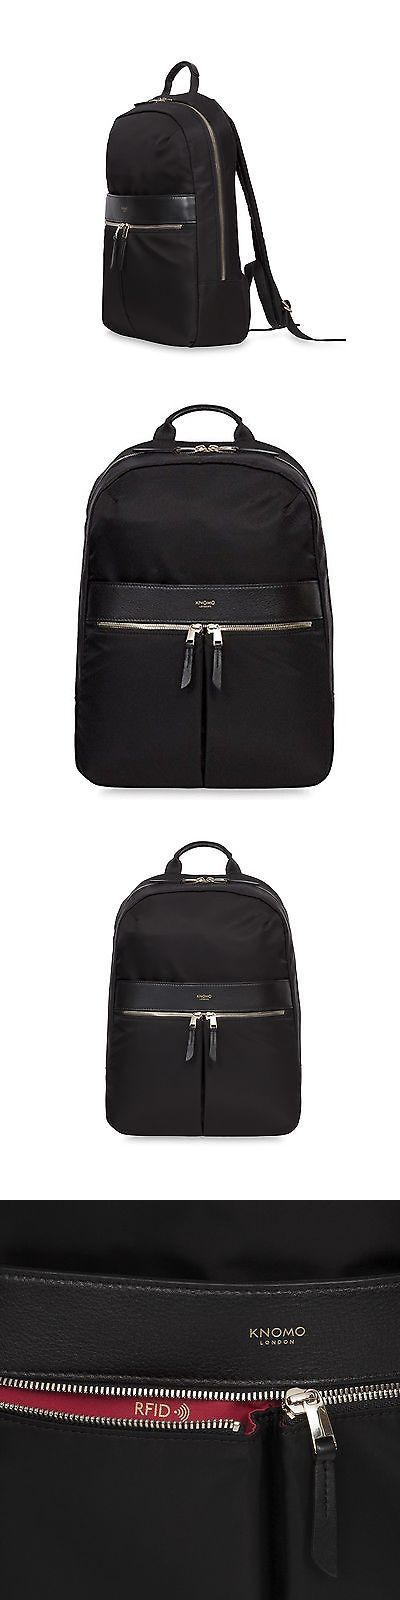 Briefcases and Laptop Bags 169293: Knomo London Womens Mayfair Beauchamp Backpack Black -> BUY IT NOW ONLY: $204.19 on eBay!